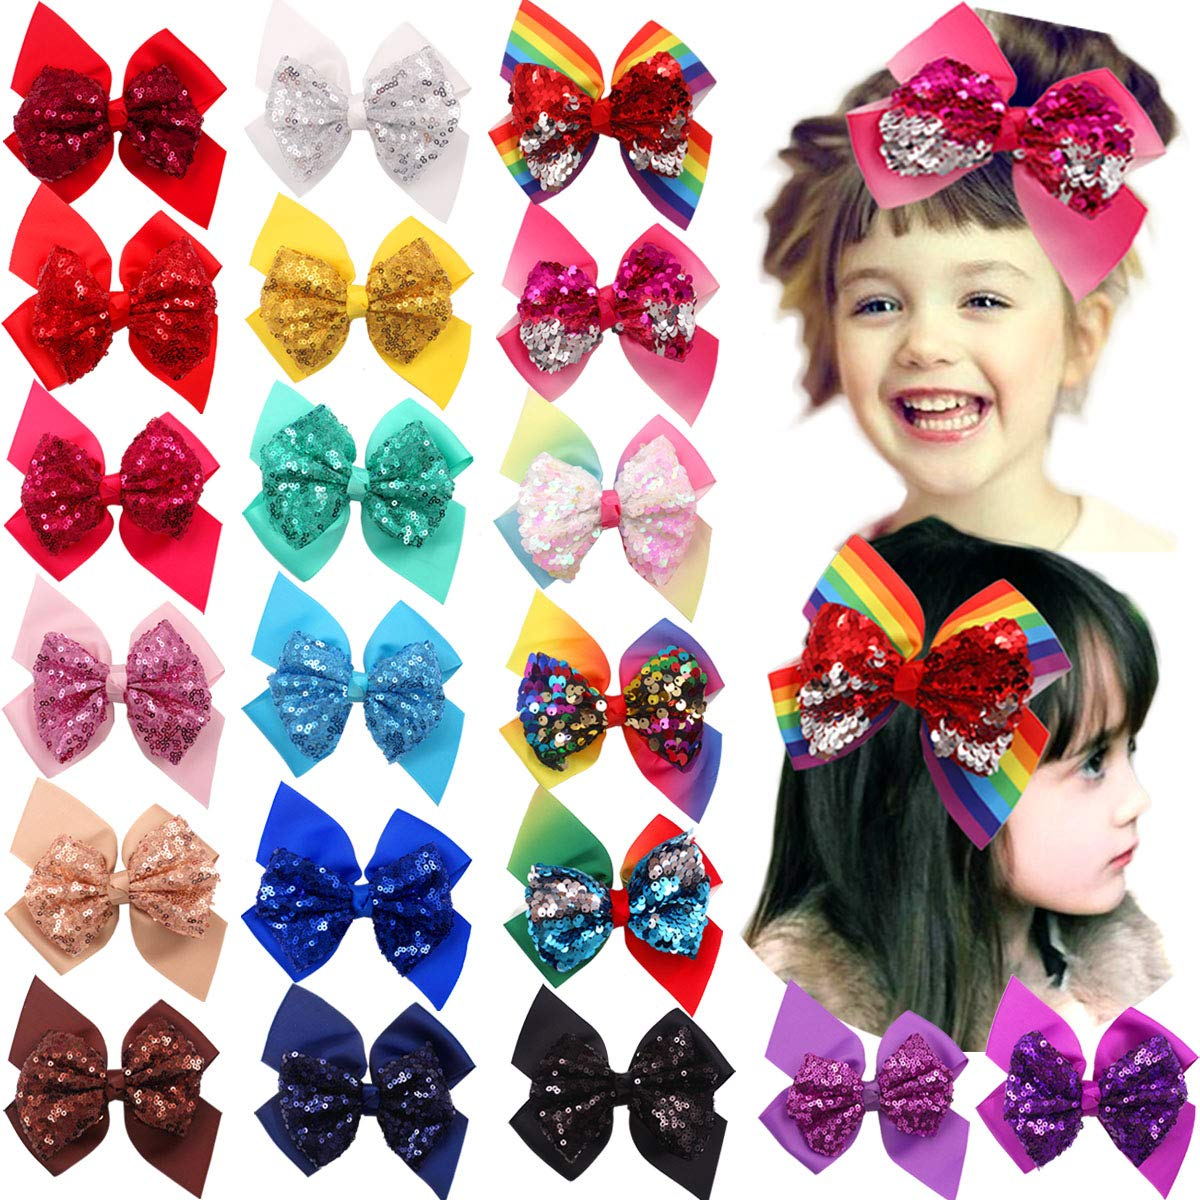 20 Colors New Girls Bling Big Party Bows Fashion 6 Inches Hair Bows Alligator Hair Clips for Baby Girls Toddlers and Kids